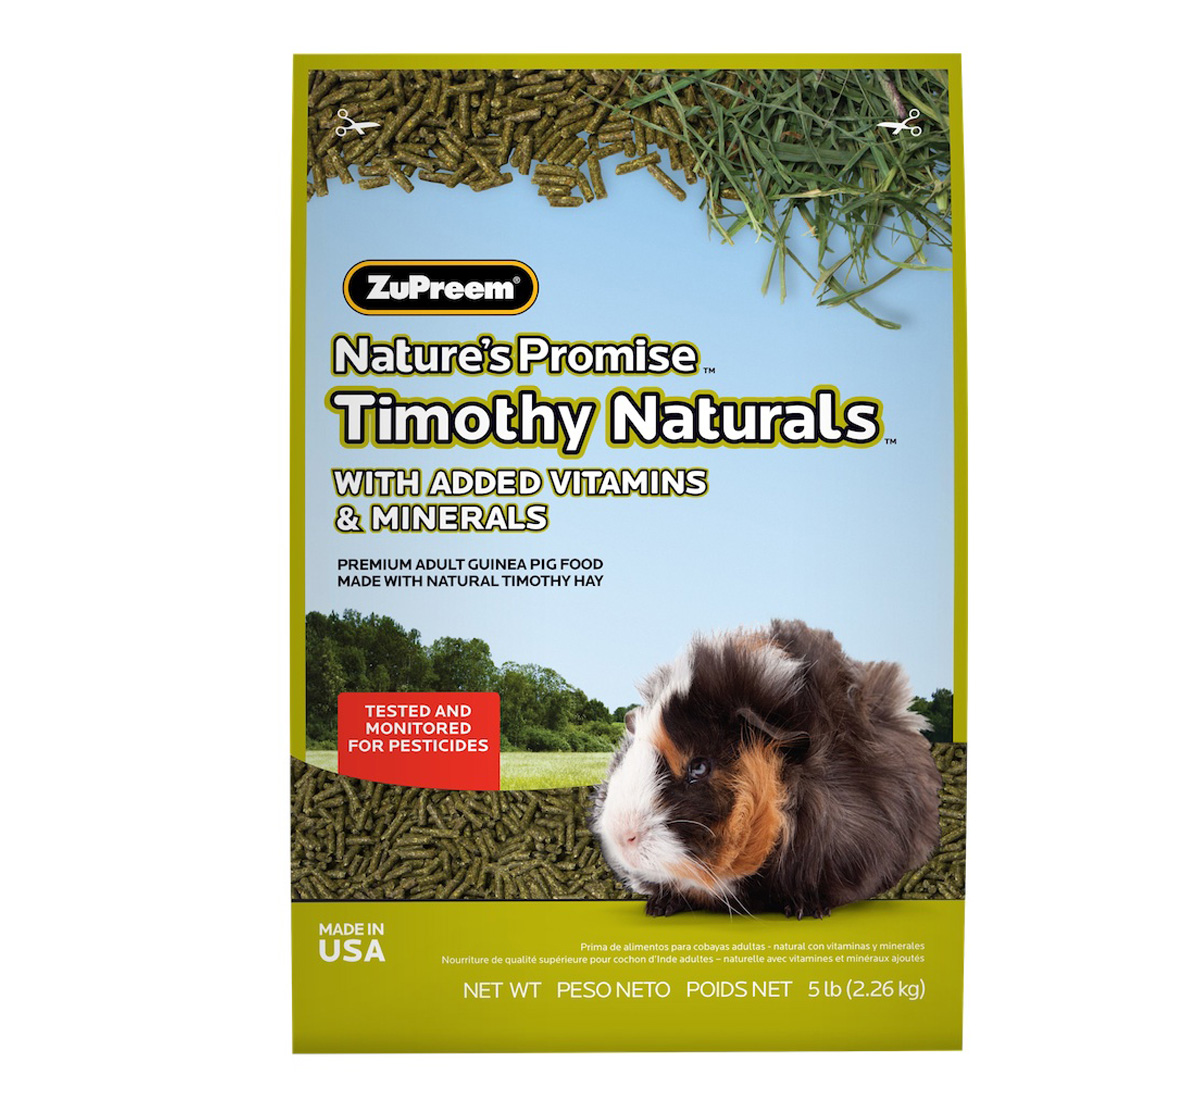 Zupreem Natures Promise Trimonthy Naturals Guinea Pig Food - 2.26 Kg